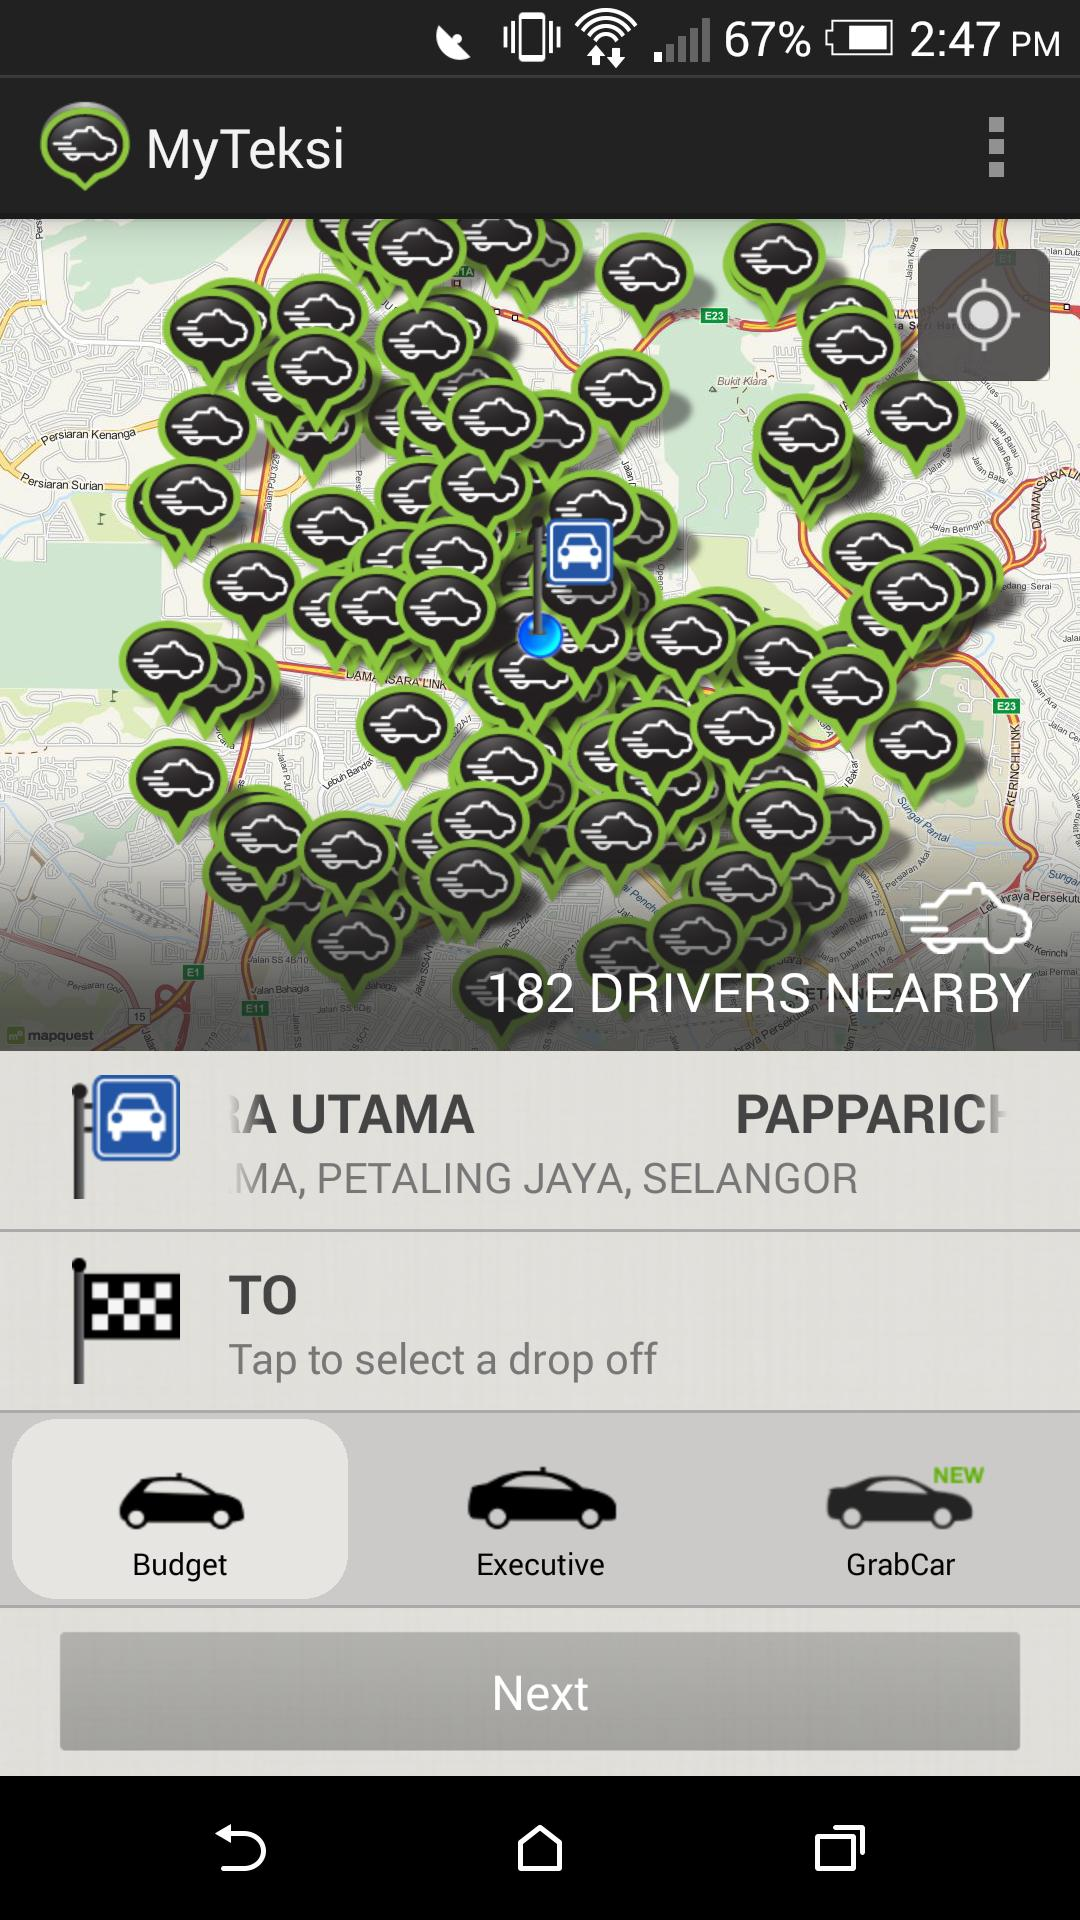 All the information you need is displayed all in one page, making it easy for a passenger to book a taxi.